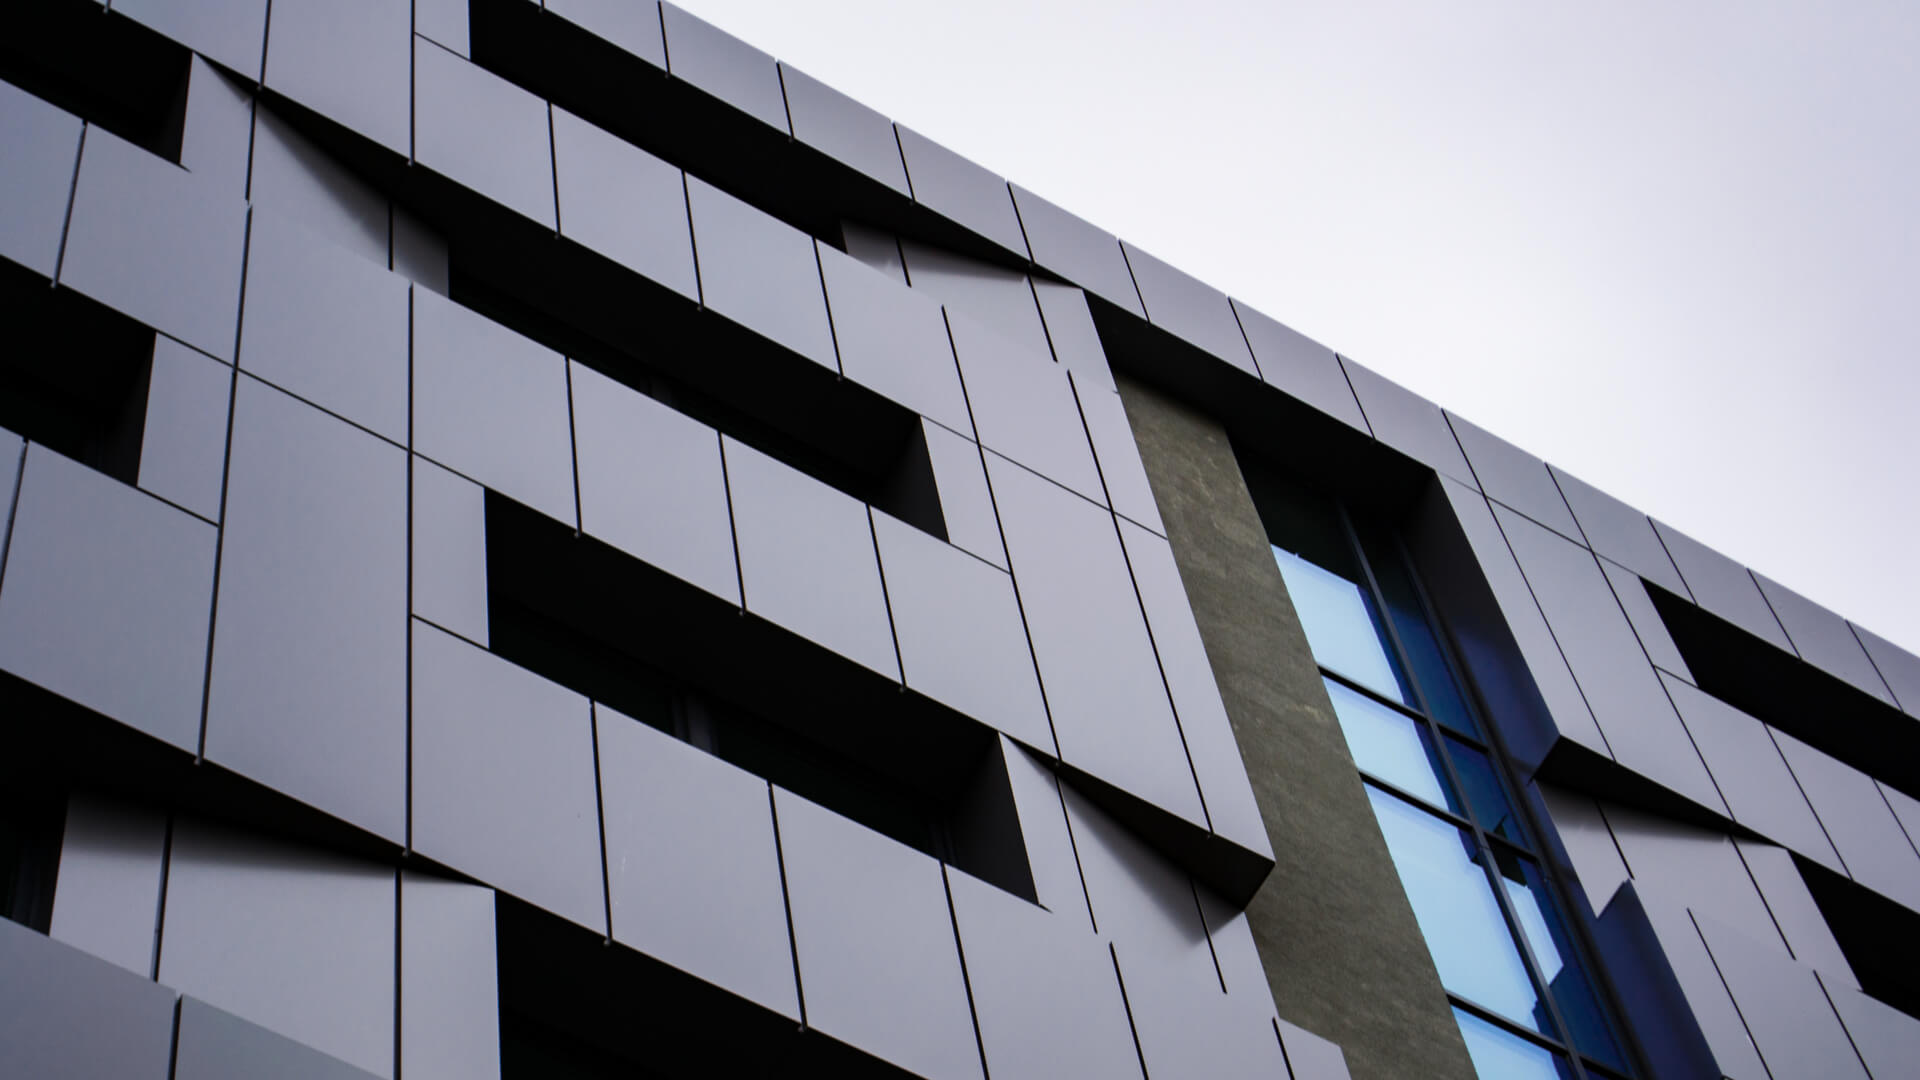 Architectural aluminium: 3 key elements for sustainable designs